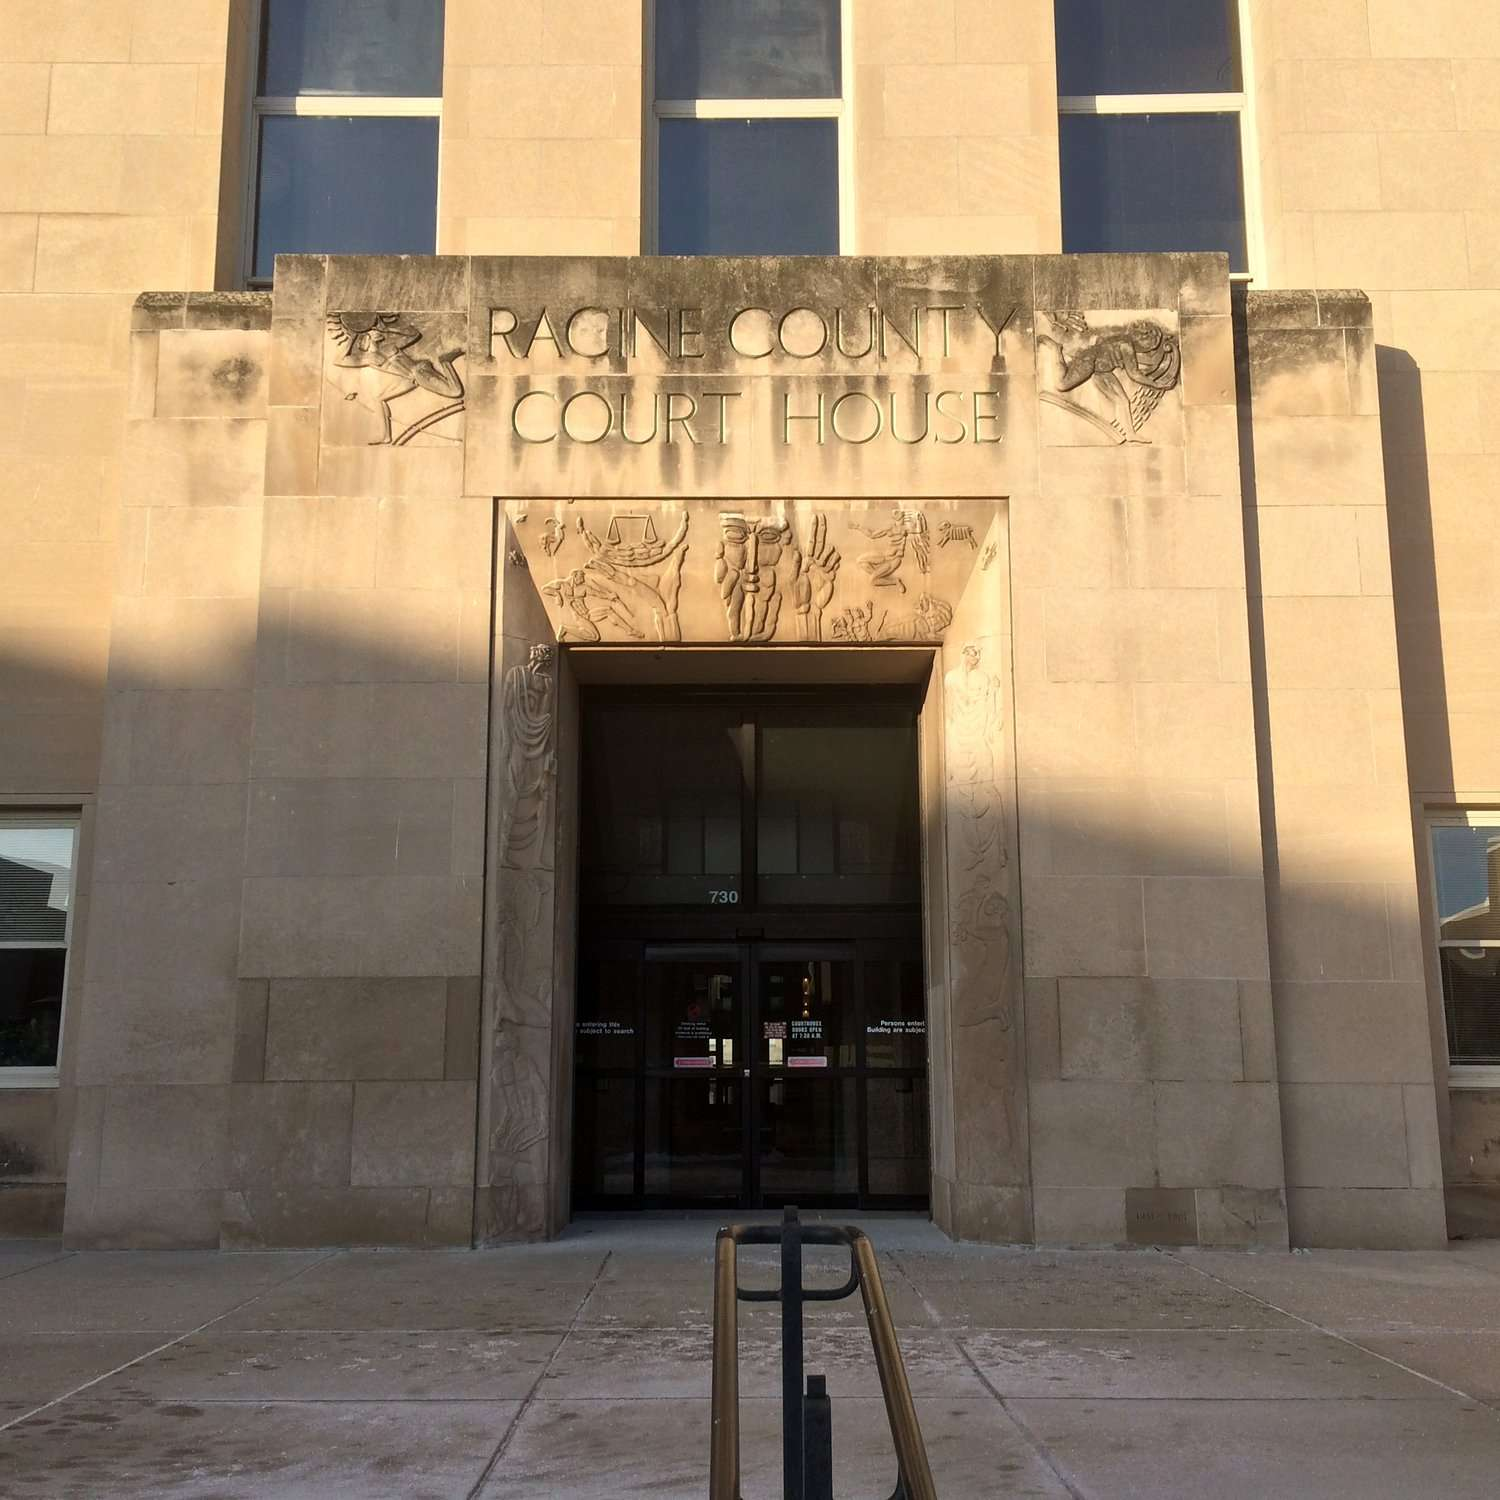 Racine Country (Wisconsin) Court House entrance